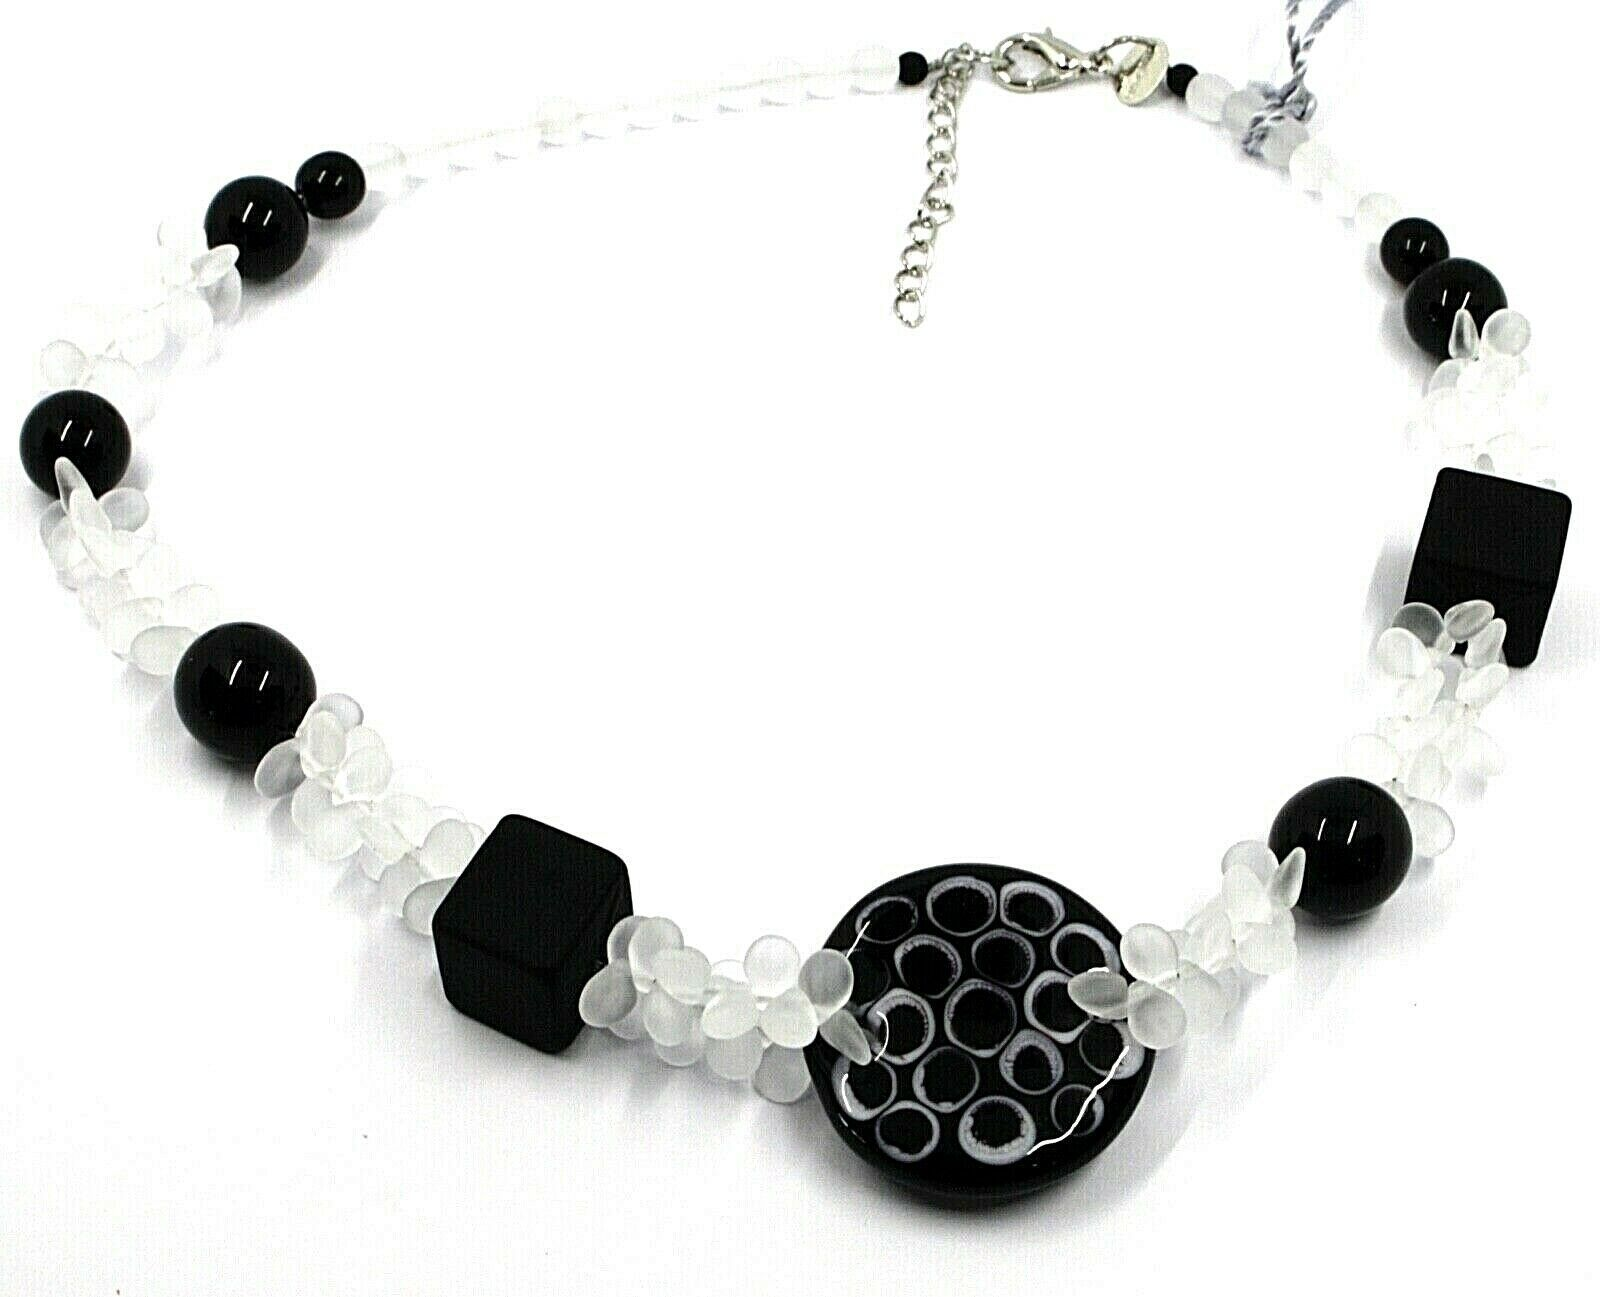 NECKLACE WHITE BLACK MURANO GLASS BUNCH OF PETAL DROPS SQUARE DISC MADE IN ITALY